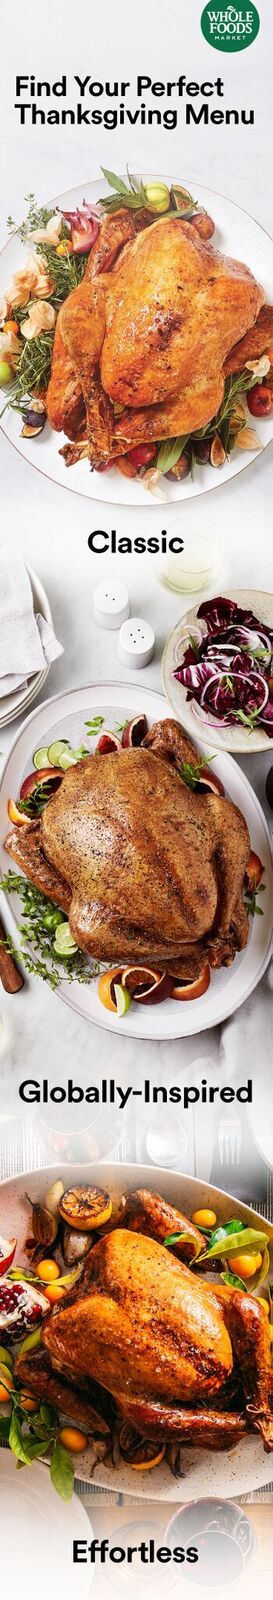 What's Your Style? Find Your Perfect Menu Thanksgiving